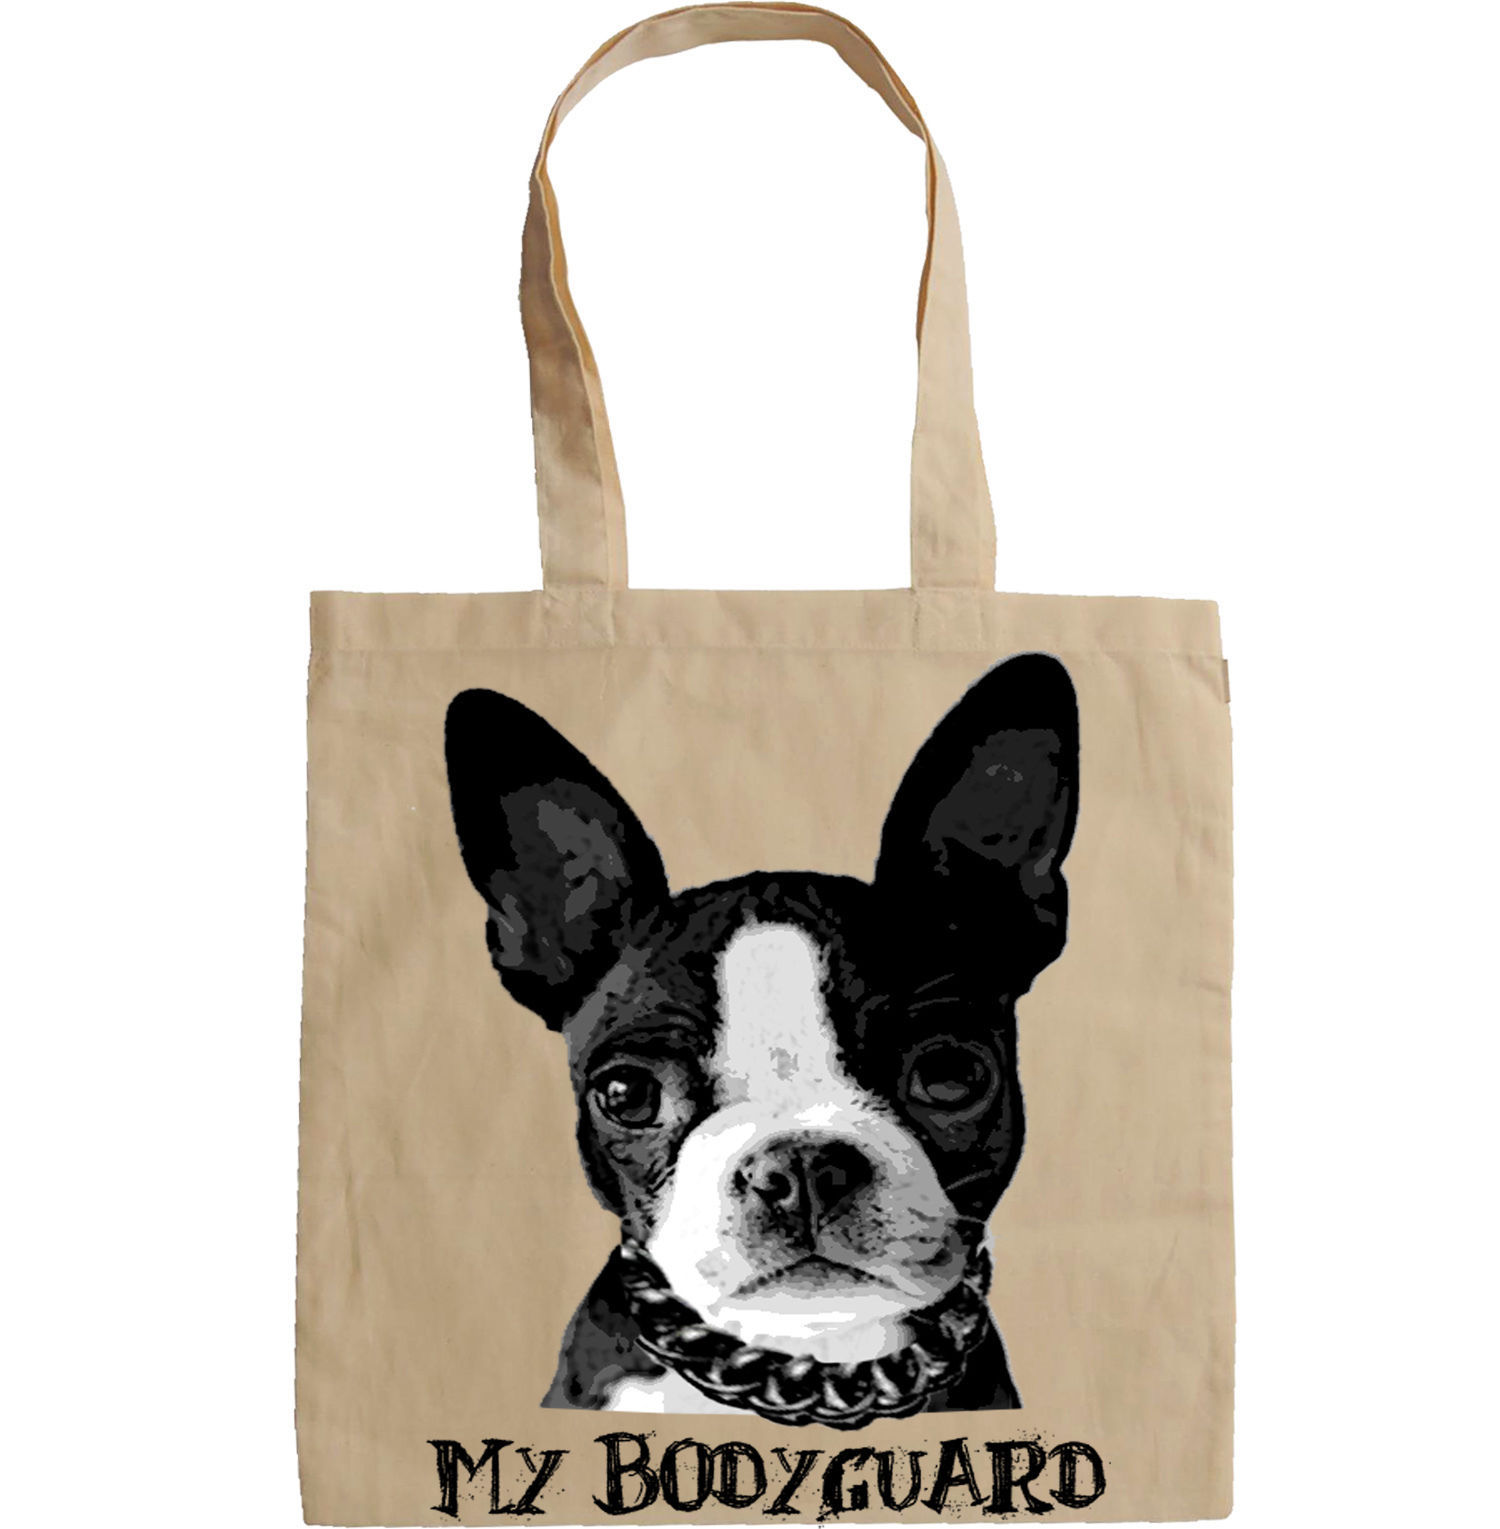 BOSTON TERRIER MY BODYGUARD - NEW AMAZING GRAPHIC HAND BAG/TOTE BAG